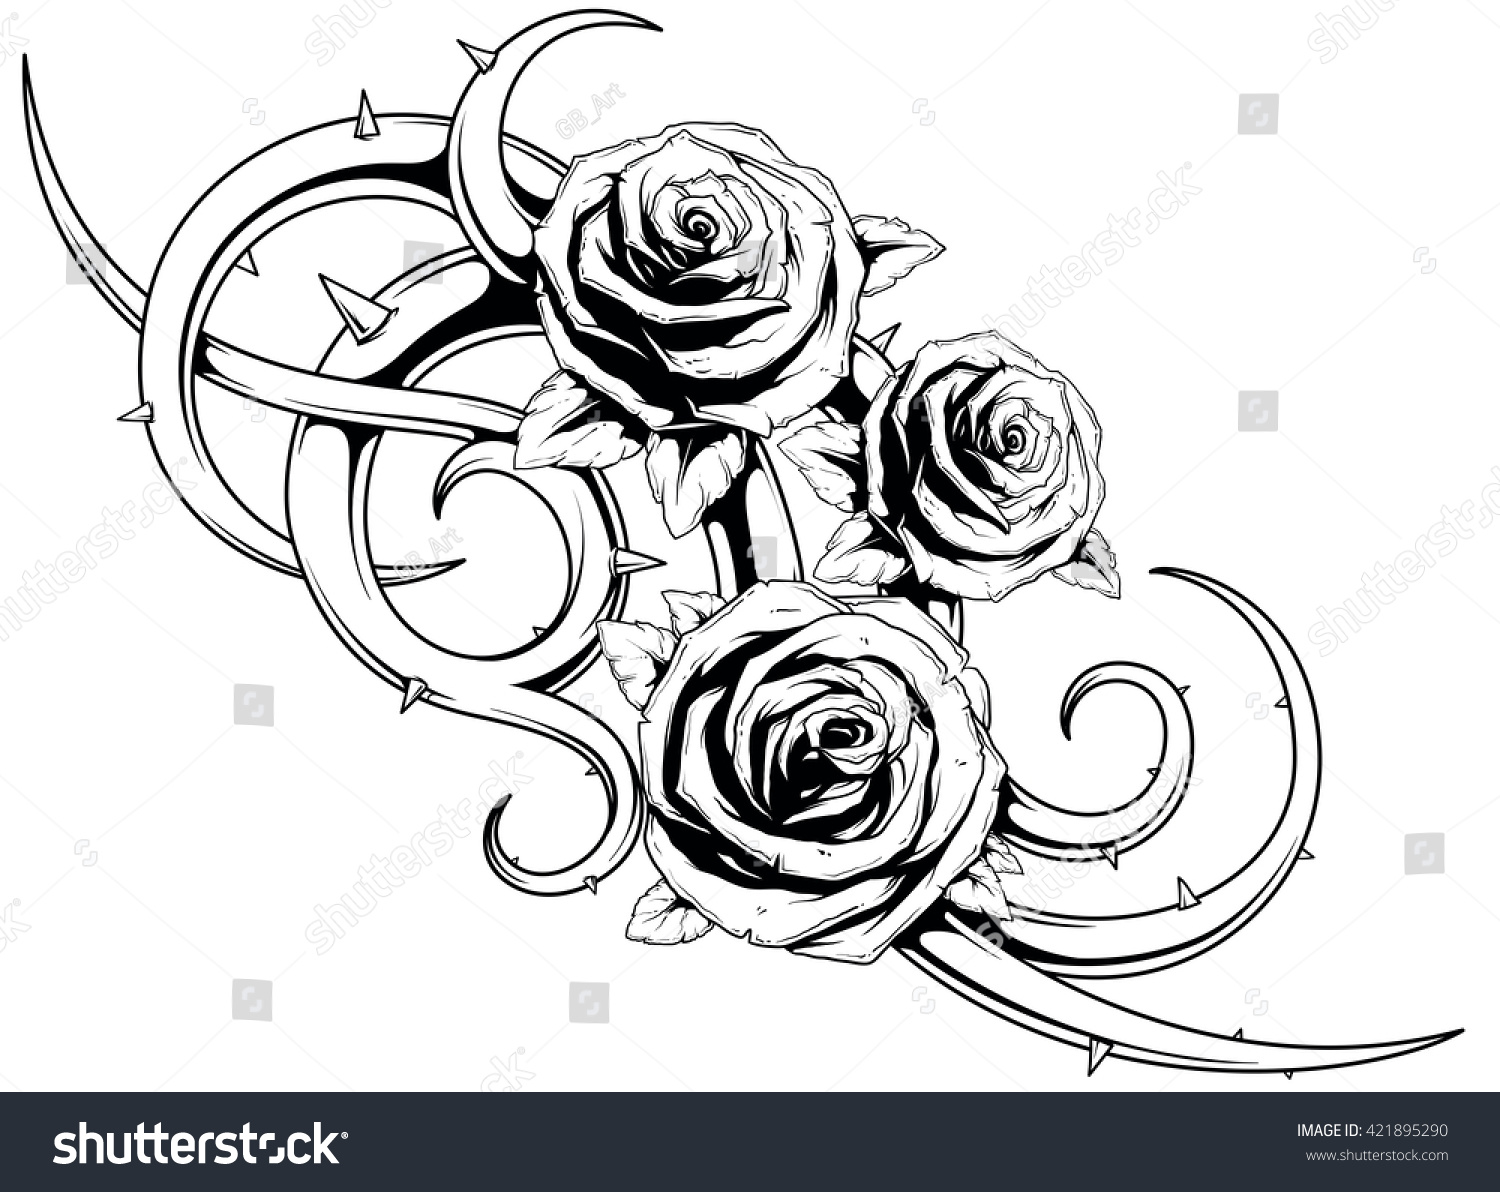 cool roses with spikes tattoo stock vector illustration 421895290 shutterstock. Black Bedroom Furniture Sets. Home Design Ideas